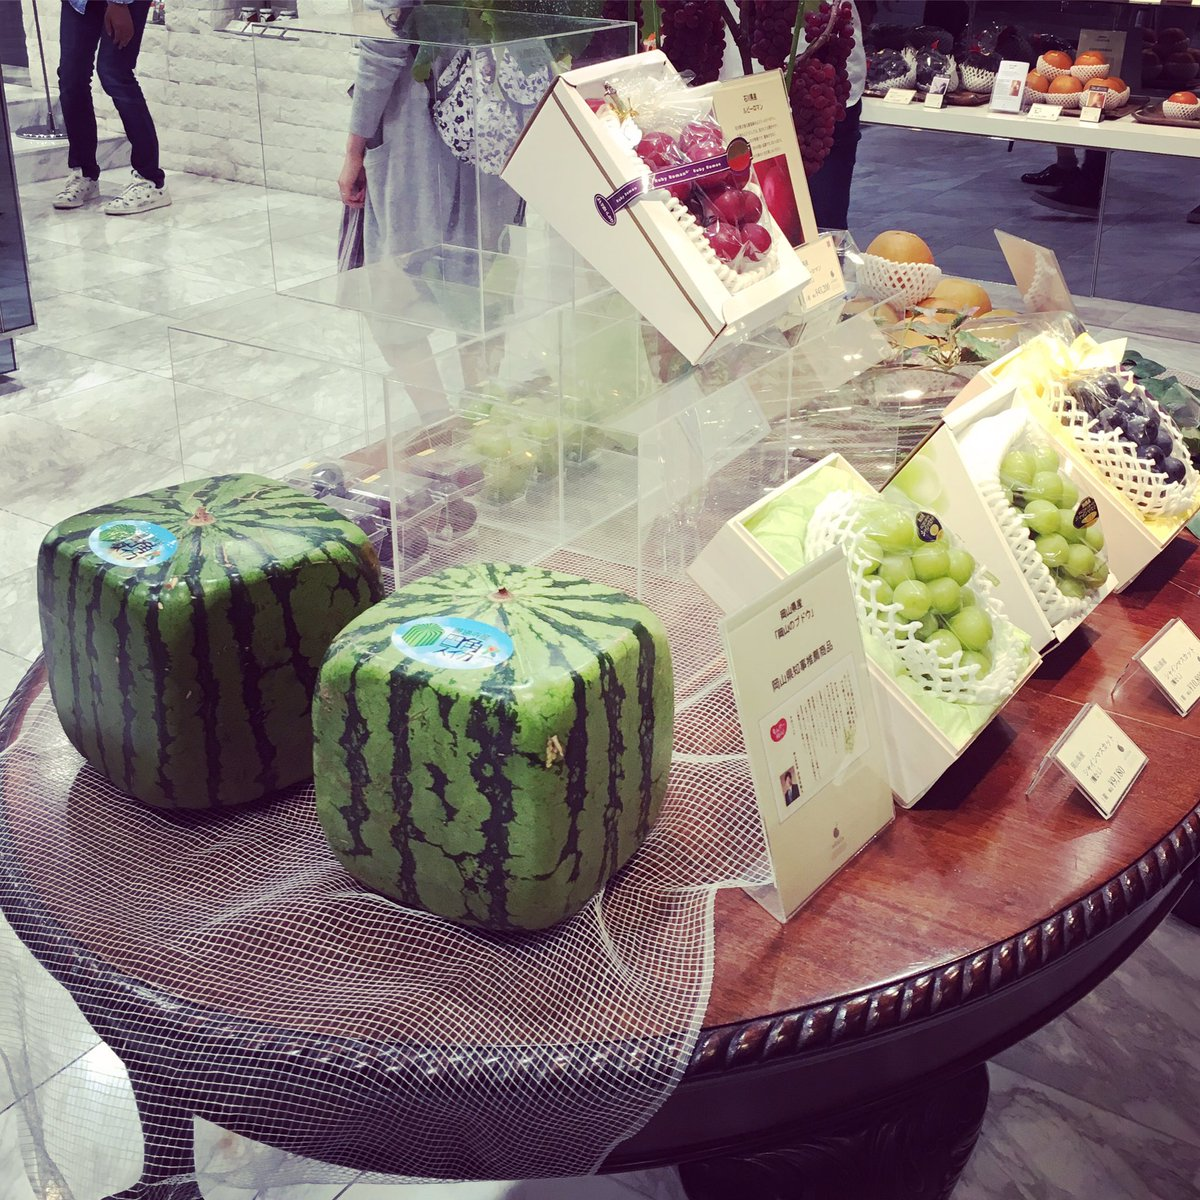 Square watermelons! And the grapes are $400 each basket - talk about fancy fruit #travel #tokyo #travelphotography